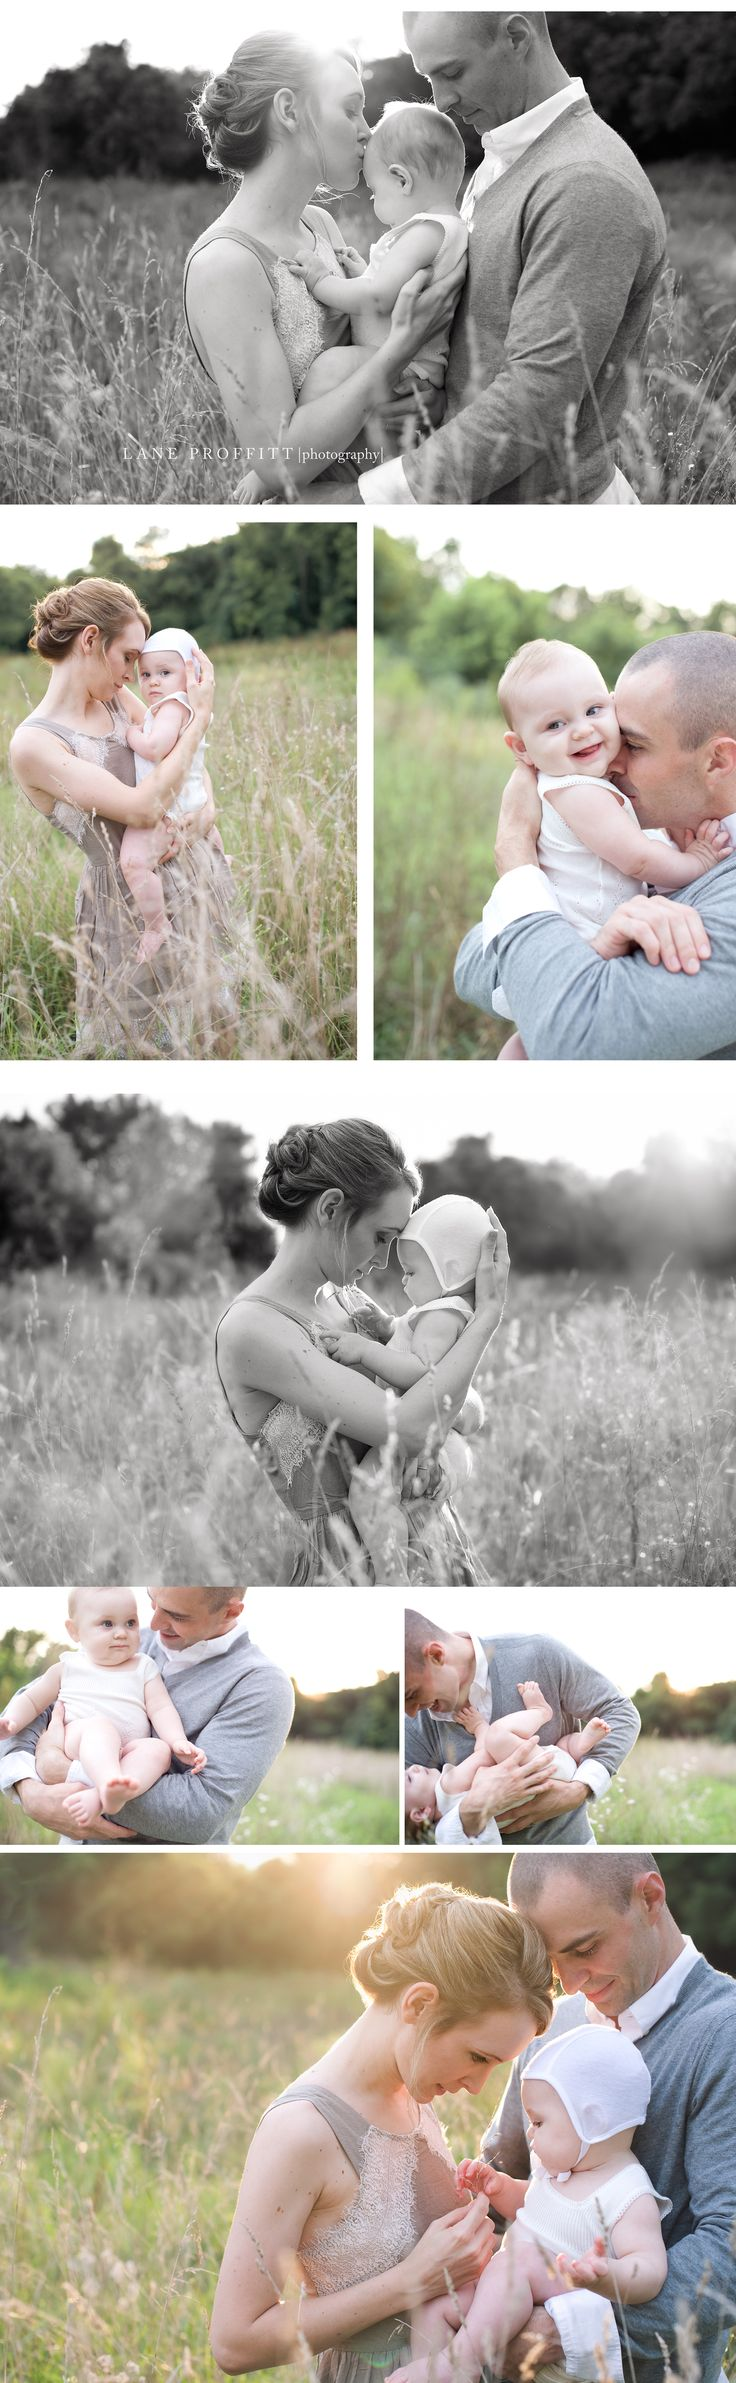 beautiful! Baby Photography | 6 months | Nashville TN copyright Lane Proffitt Photography- I adore this session!!!